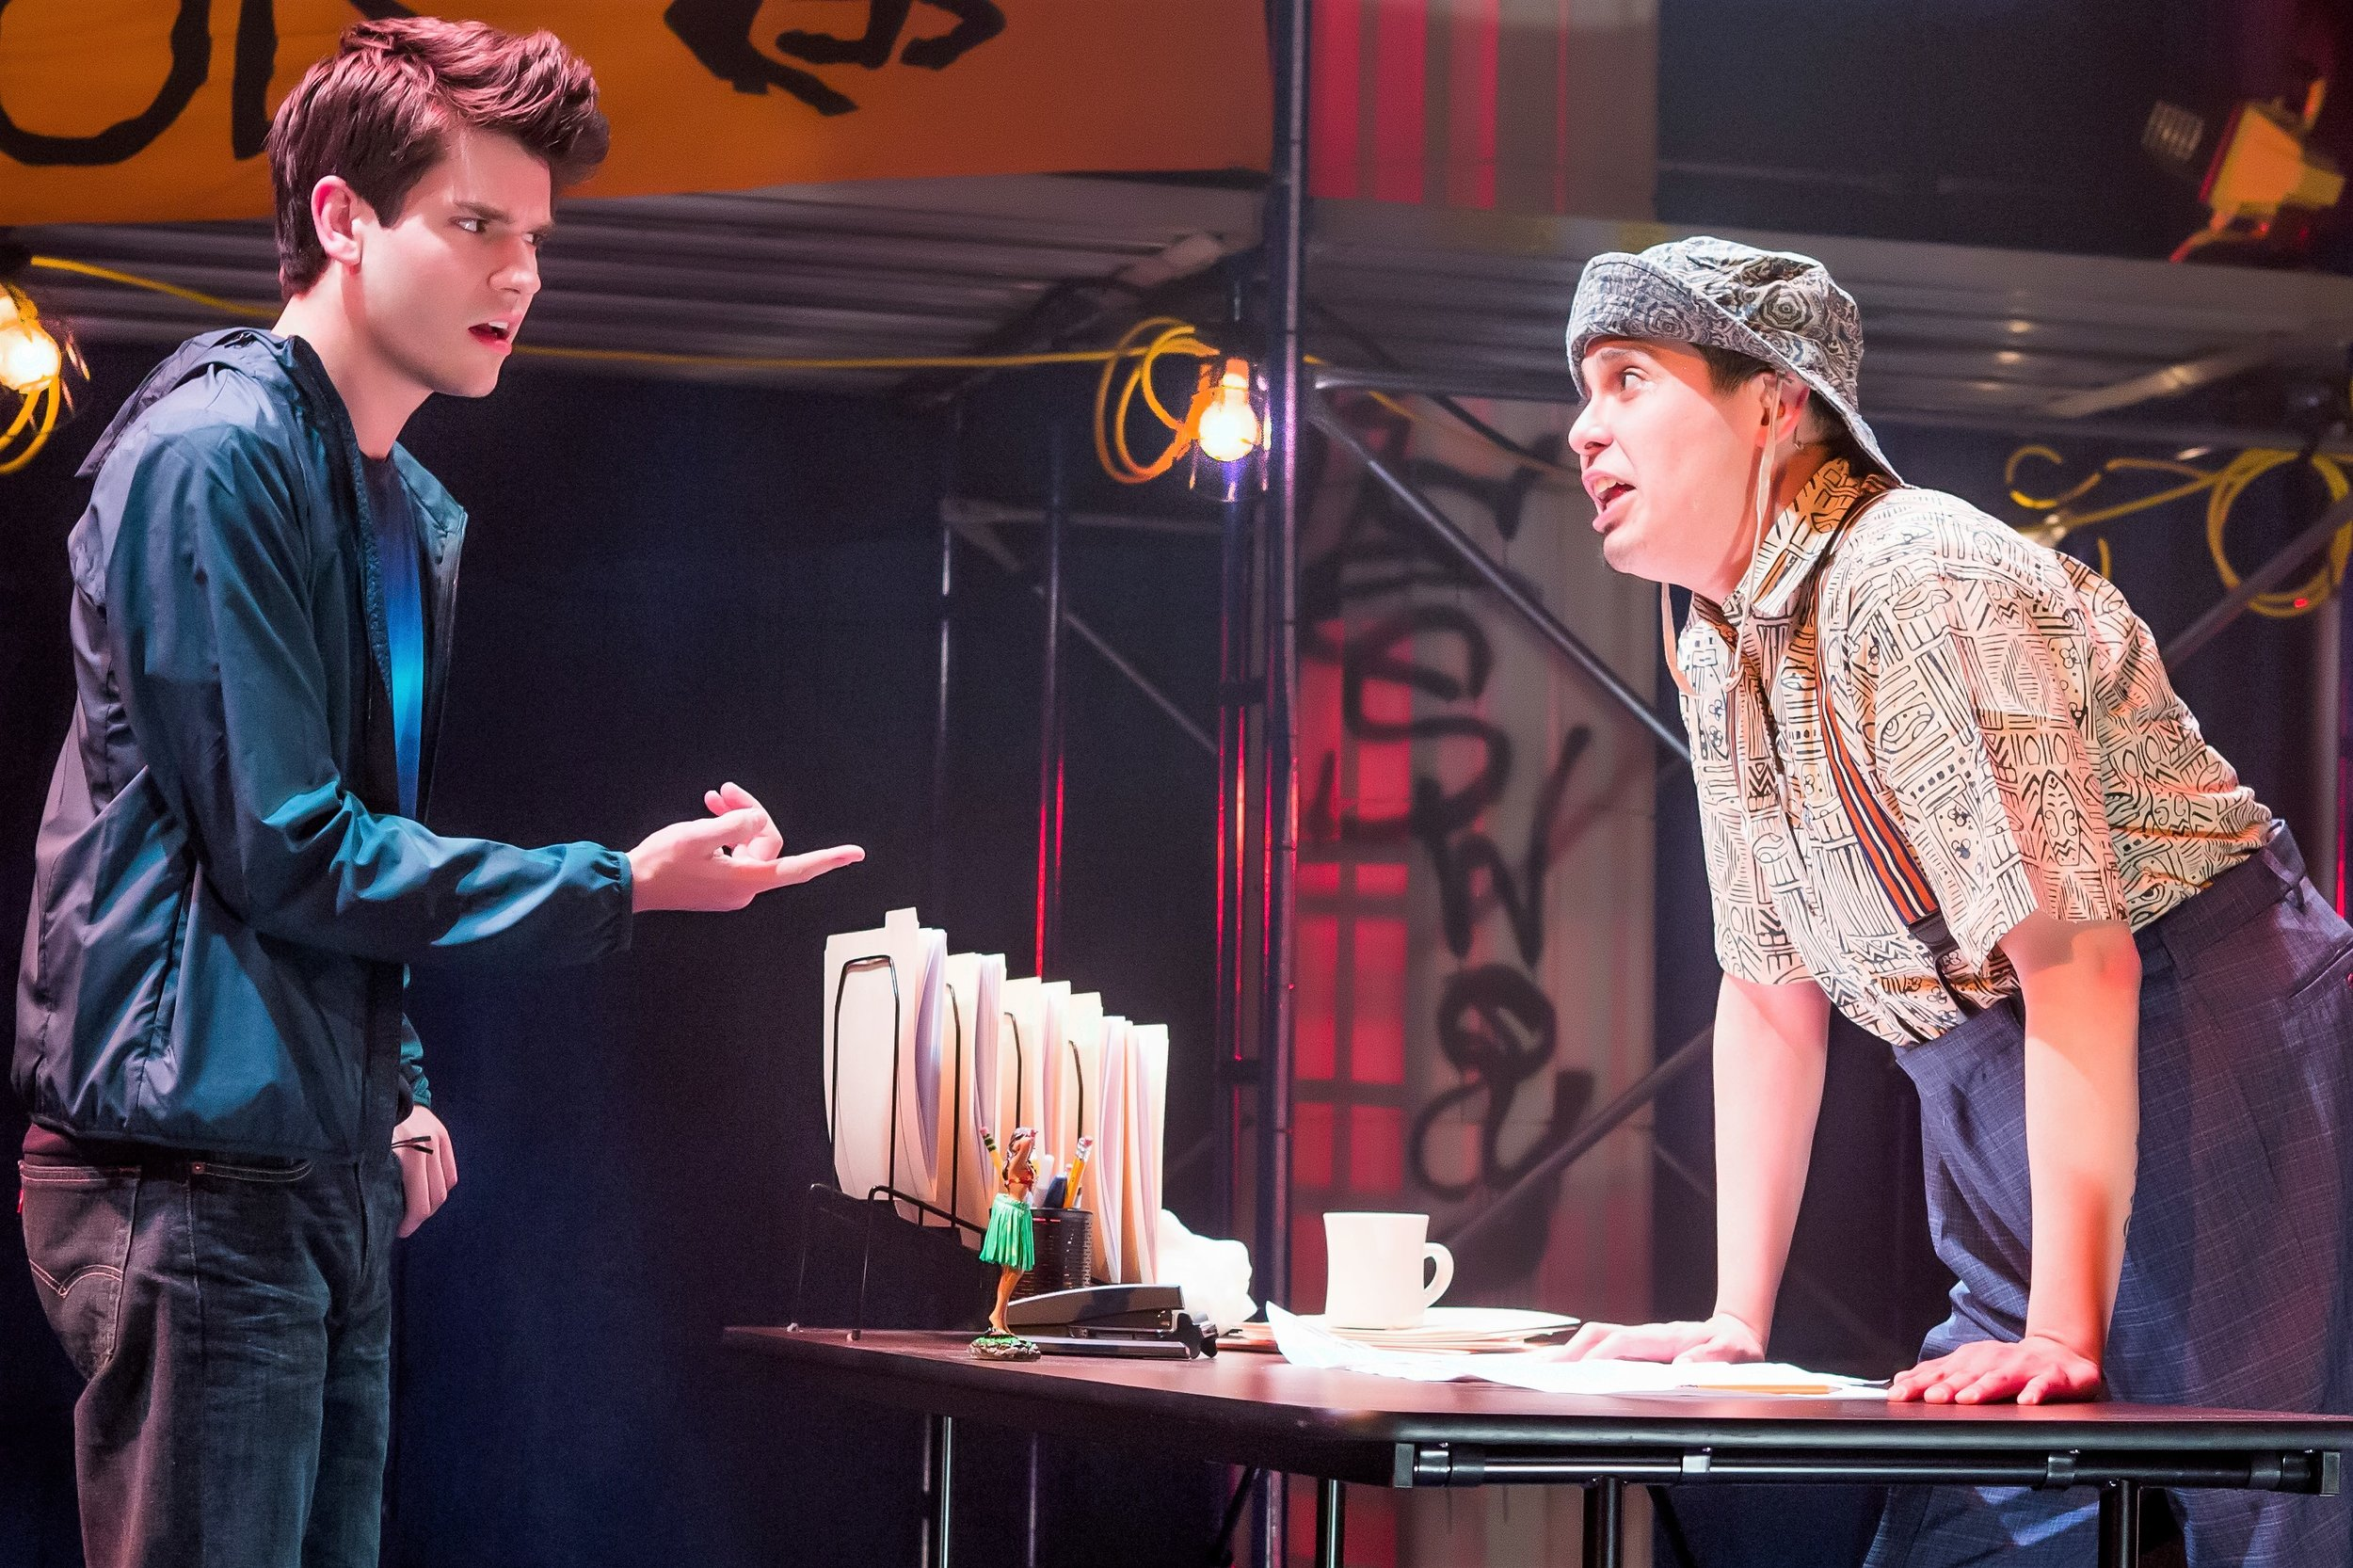 Percy (Chris McCarrell, left) gets a tongue-lashing from Mr. D (George Salazar) at Camp Half-Blood. Top: Percy meets the Oracle (Carrie Compere), but can she be trusted?